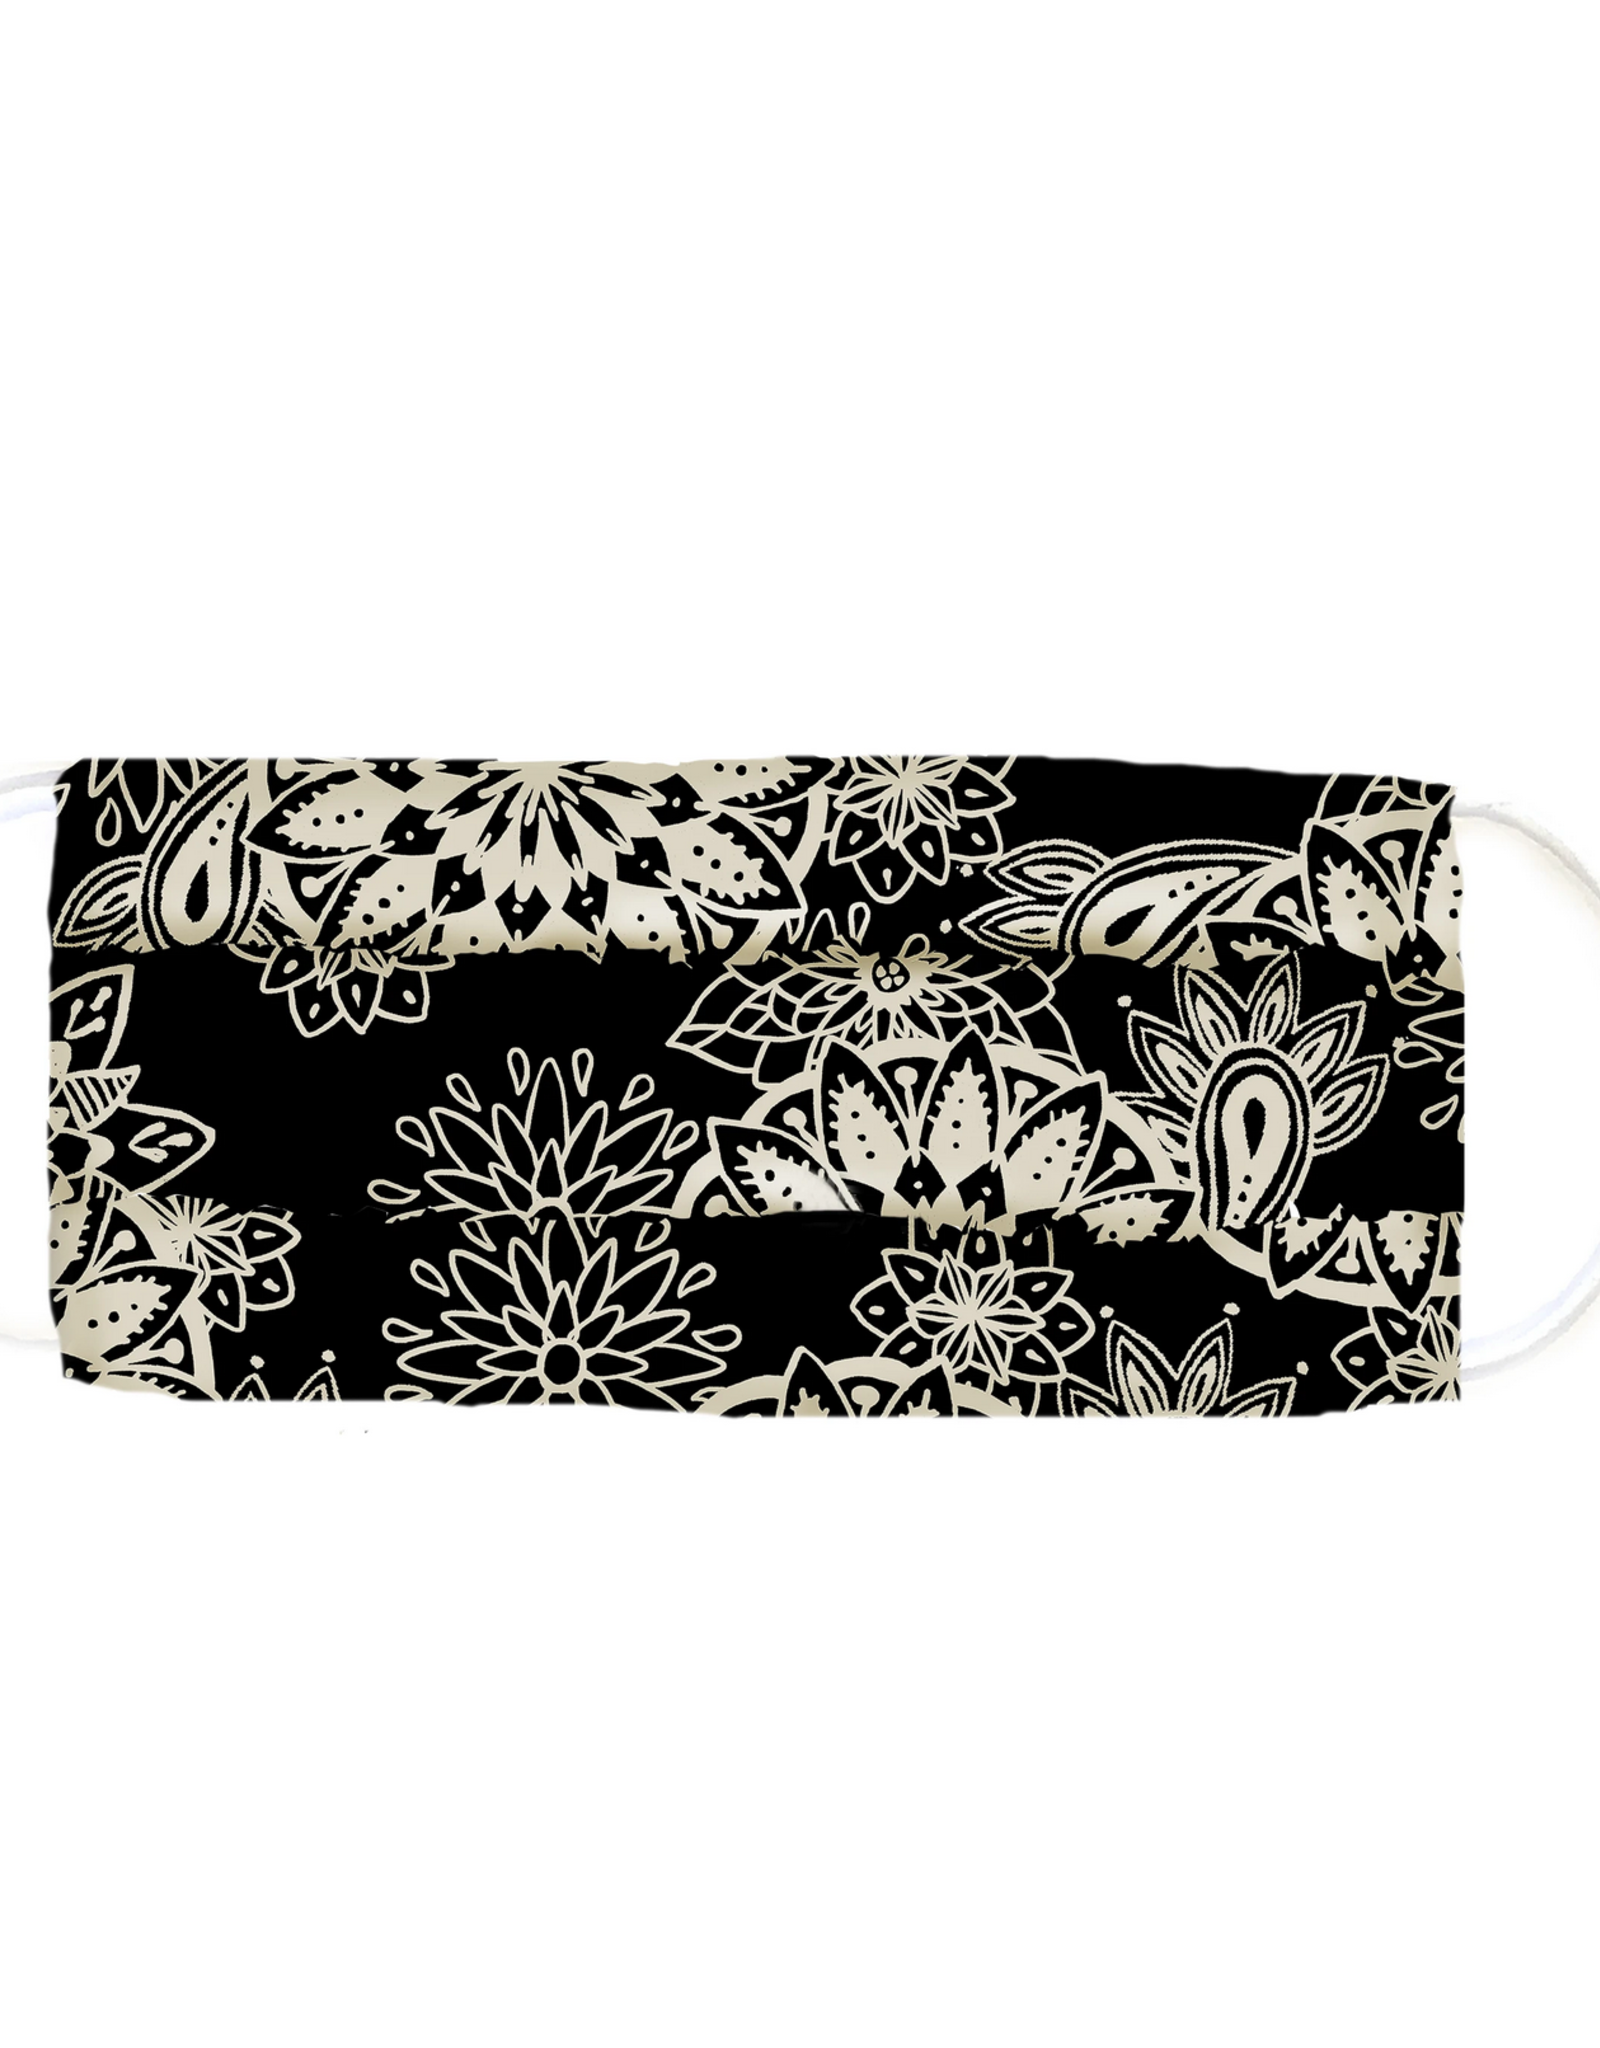 Lotus and Luna Lotus and Luna - Pleated Face Mask - Black and Cream Paisley